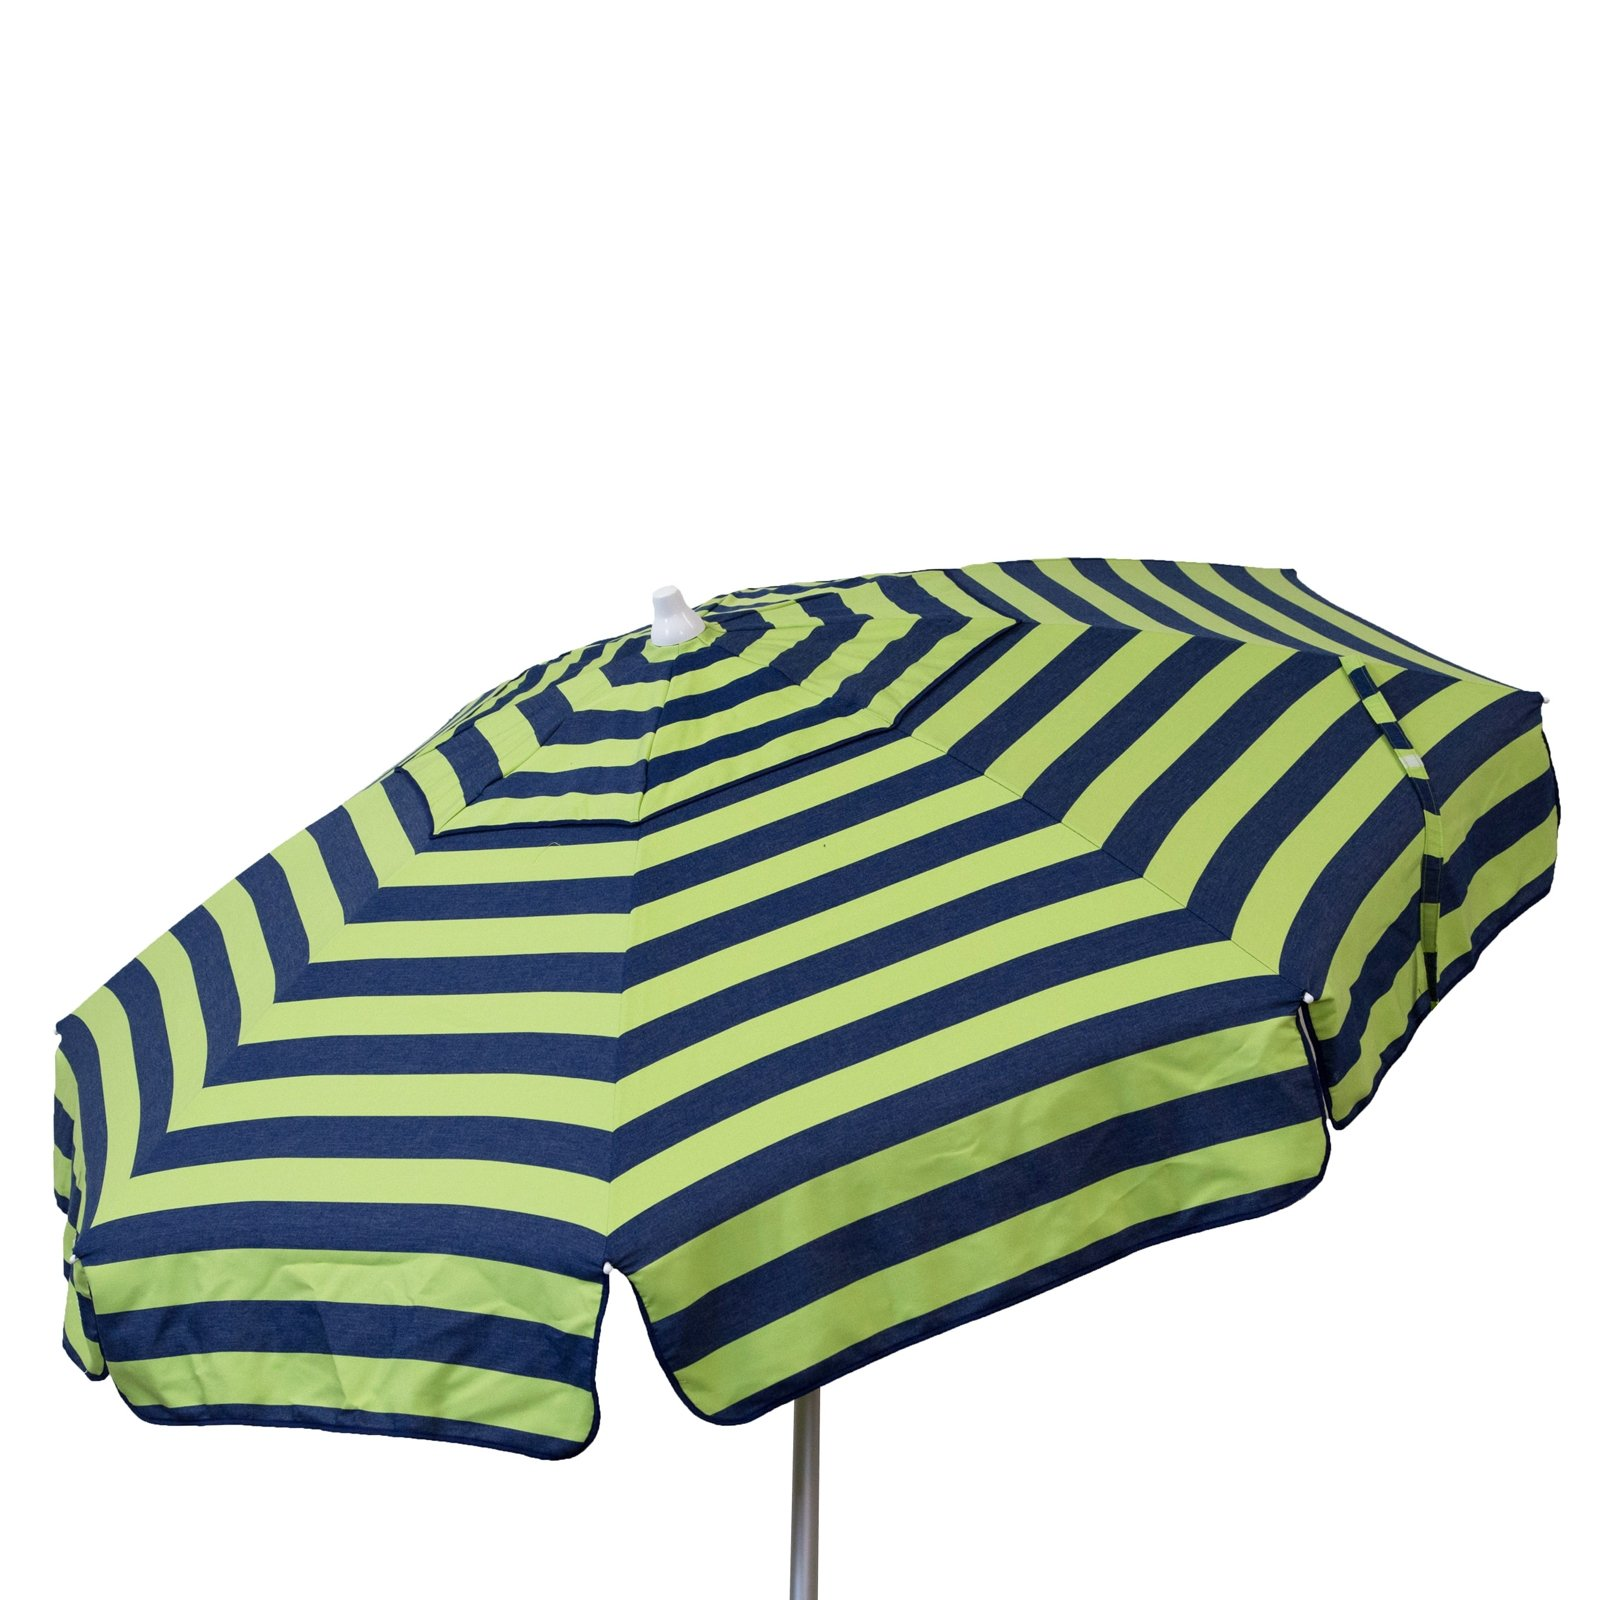 Euro 6 foot Umbrella Acrylic Stripes Navy and Lime - Beach Pole